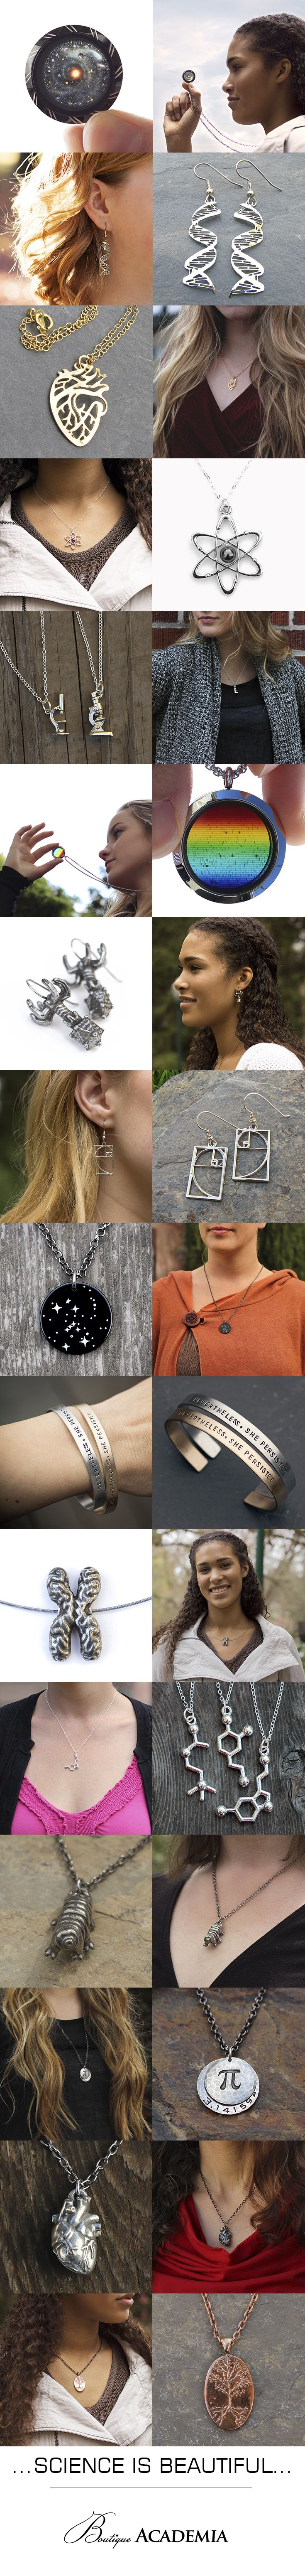 Amazing collection of science and math jewelry! Great gifts for teachers, students, scientists, and science lovers of all kinds.